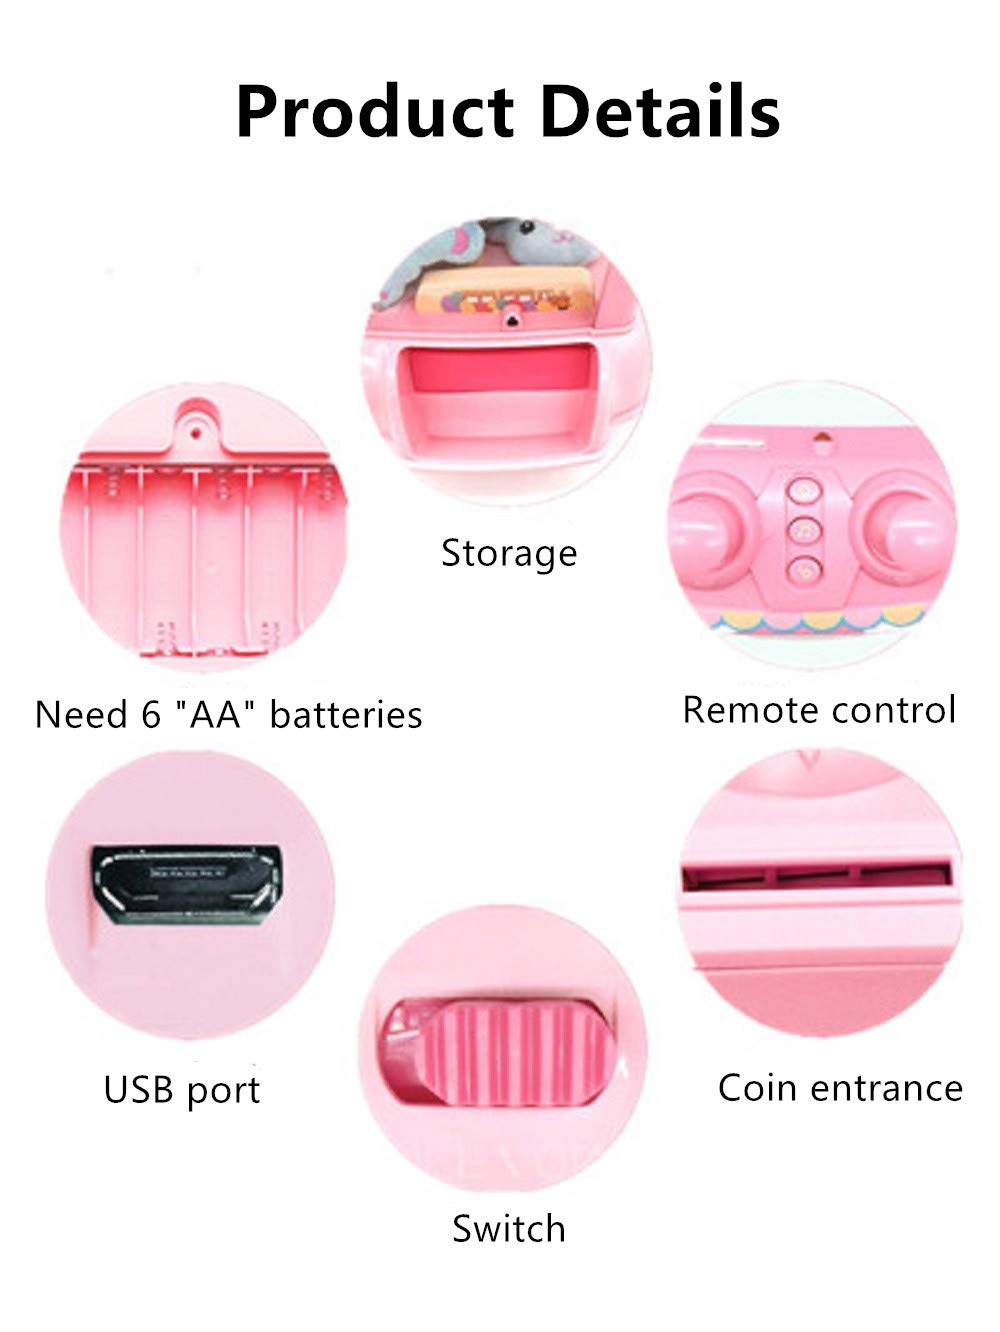 ForBEST Claw Machine Doll Machine with Removable Remote Control, USB Cable, 6 Dolls, Adjustable Sounds and Lights, Best Gift Toy for Kids (Pink) by For BEST (Image #3)